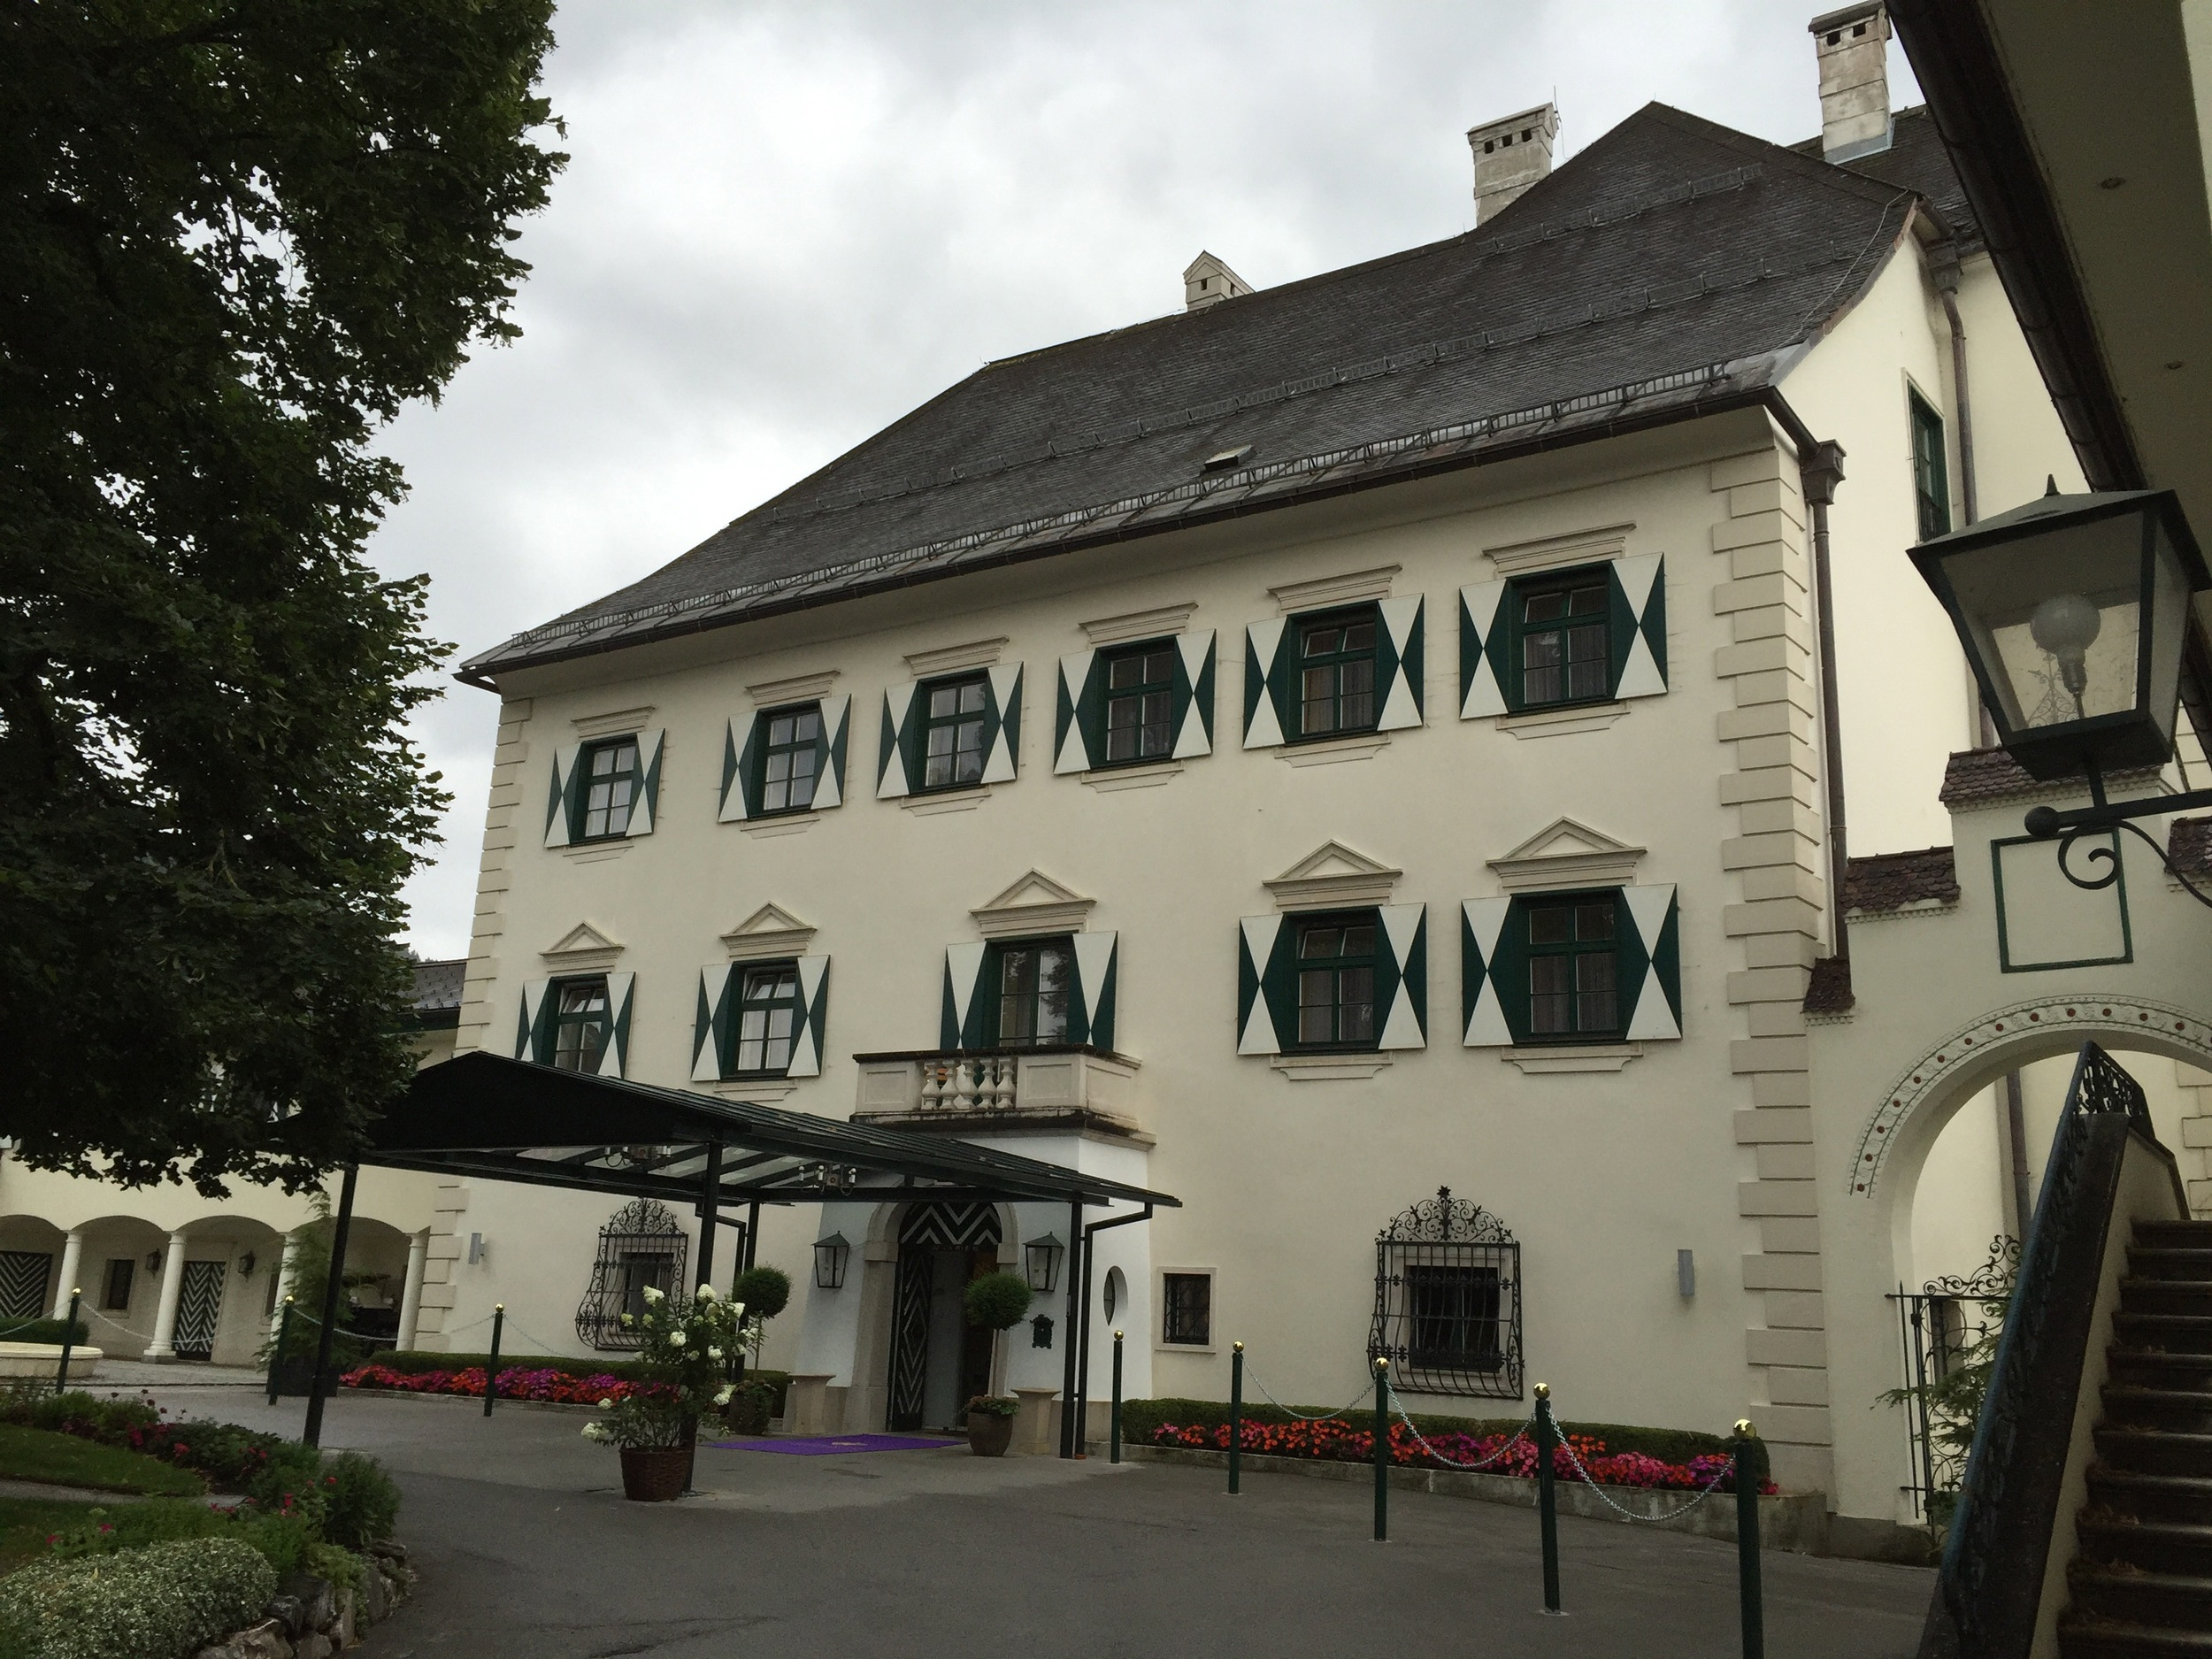 The imposing entrance to the Schloss-Pichlarn Hotel